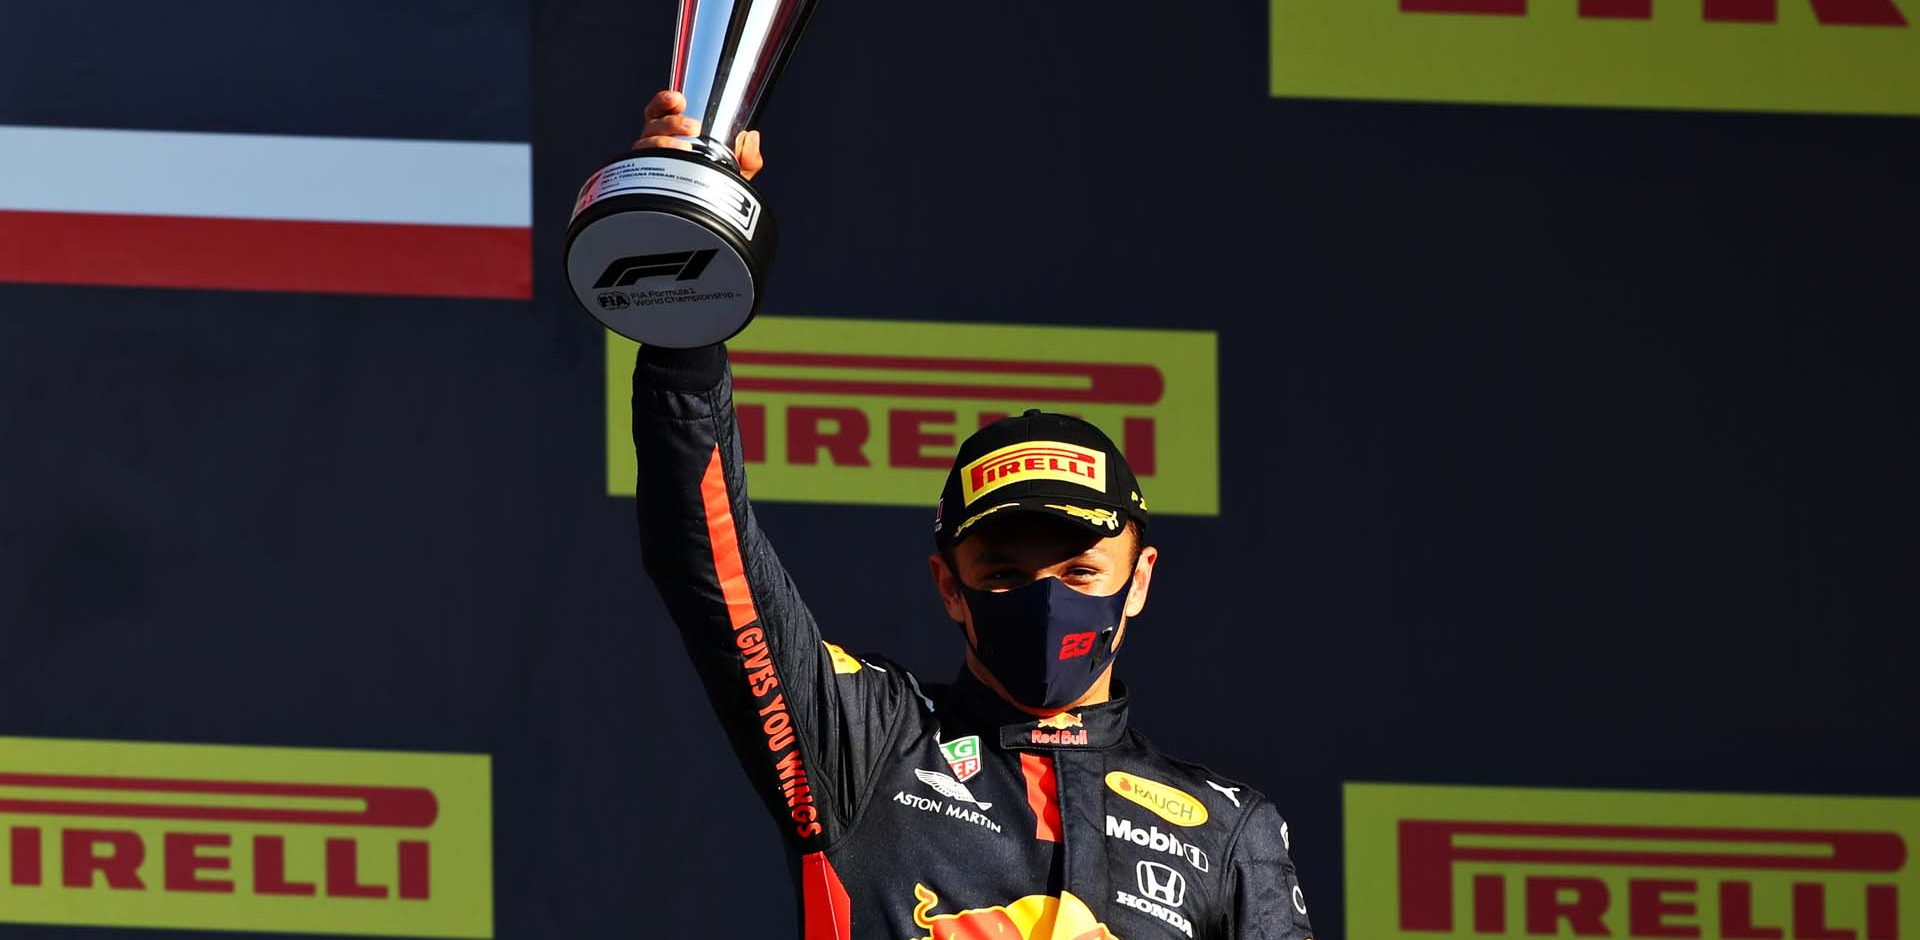 SCARPERIA, ITALY - SEPTEMBER 13: Third placed Alexander Albon of Thailand and Red Bull Racing celebrates on the podium during the F1 Grand Prix of Tuscany at Mugello Circuit on September 13, 2020 in Scarperia, Italy. (Photo by Mark Thompson/Getty Images)